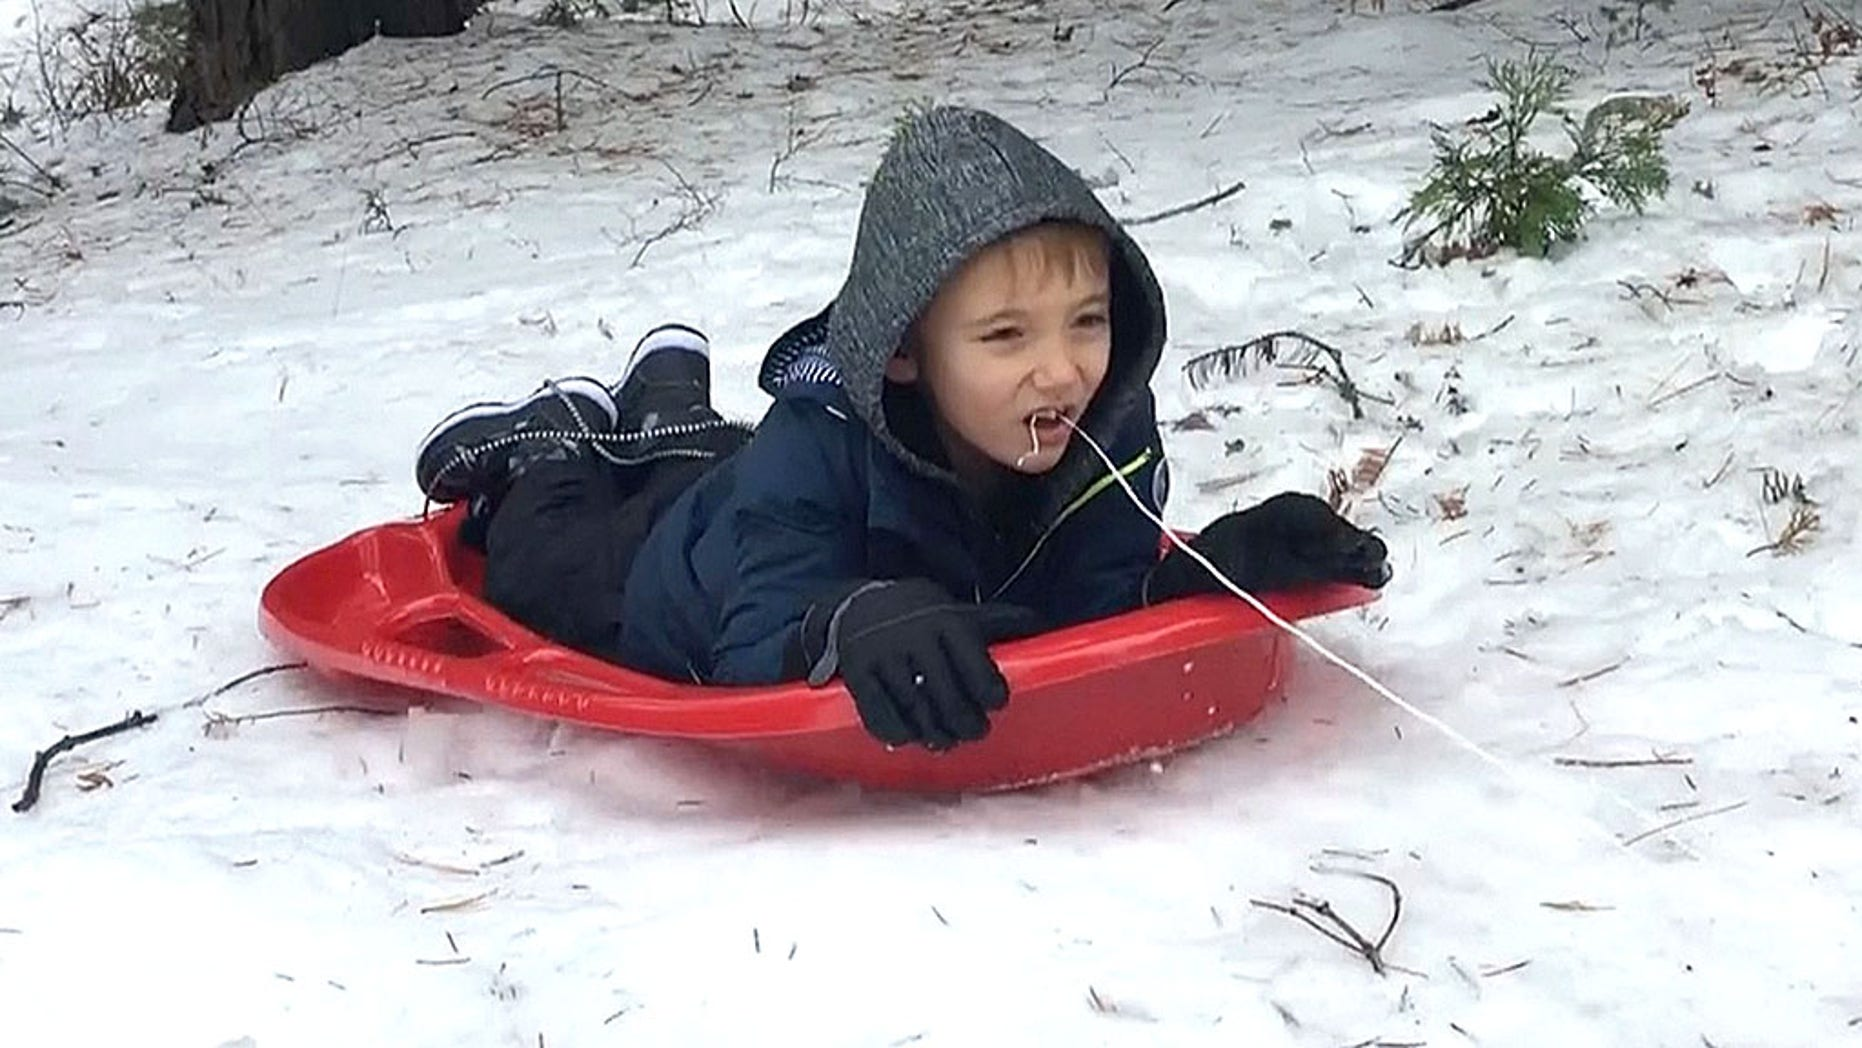 P Atticus Chandler, 6, decided the best way to yank out his loose tooth was to tie a piece of string around his tooth and let a sled do the trick.